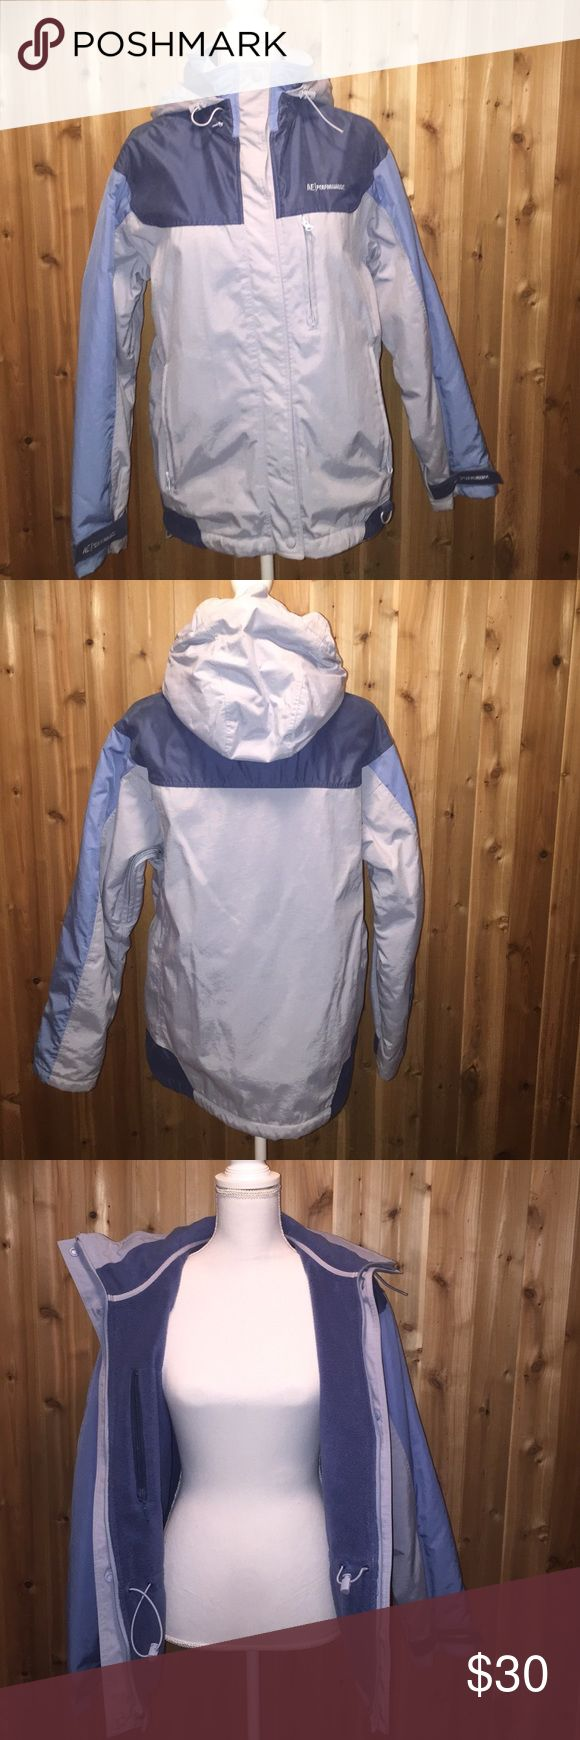 American Eagle Jacket This American Eagle jacket is perfect for the cold! Both zip and snap front. Hooded.❄️ American Eagle Outfitters Jackets & Coats Utility Jackets